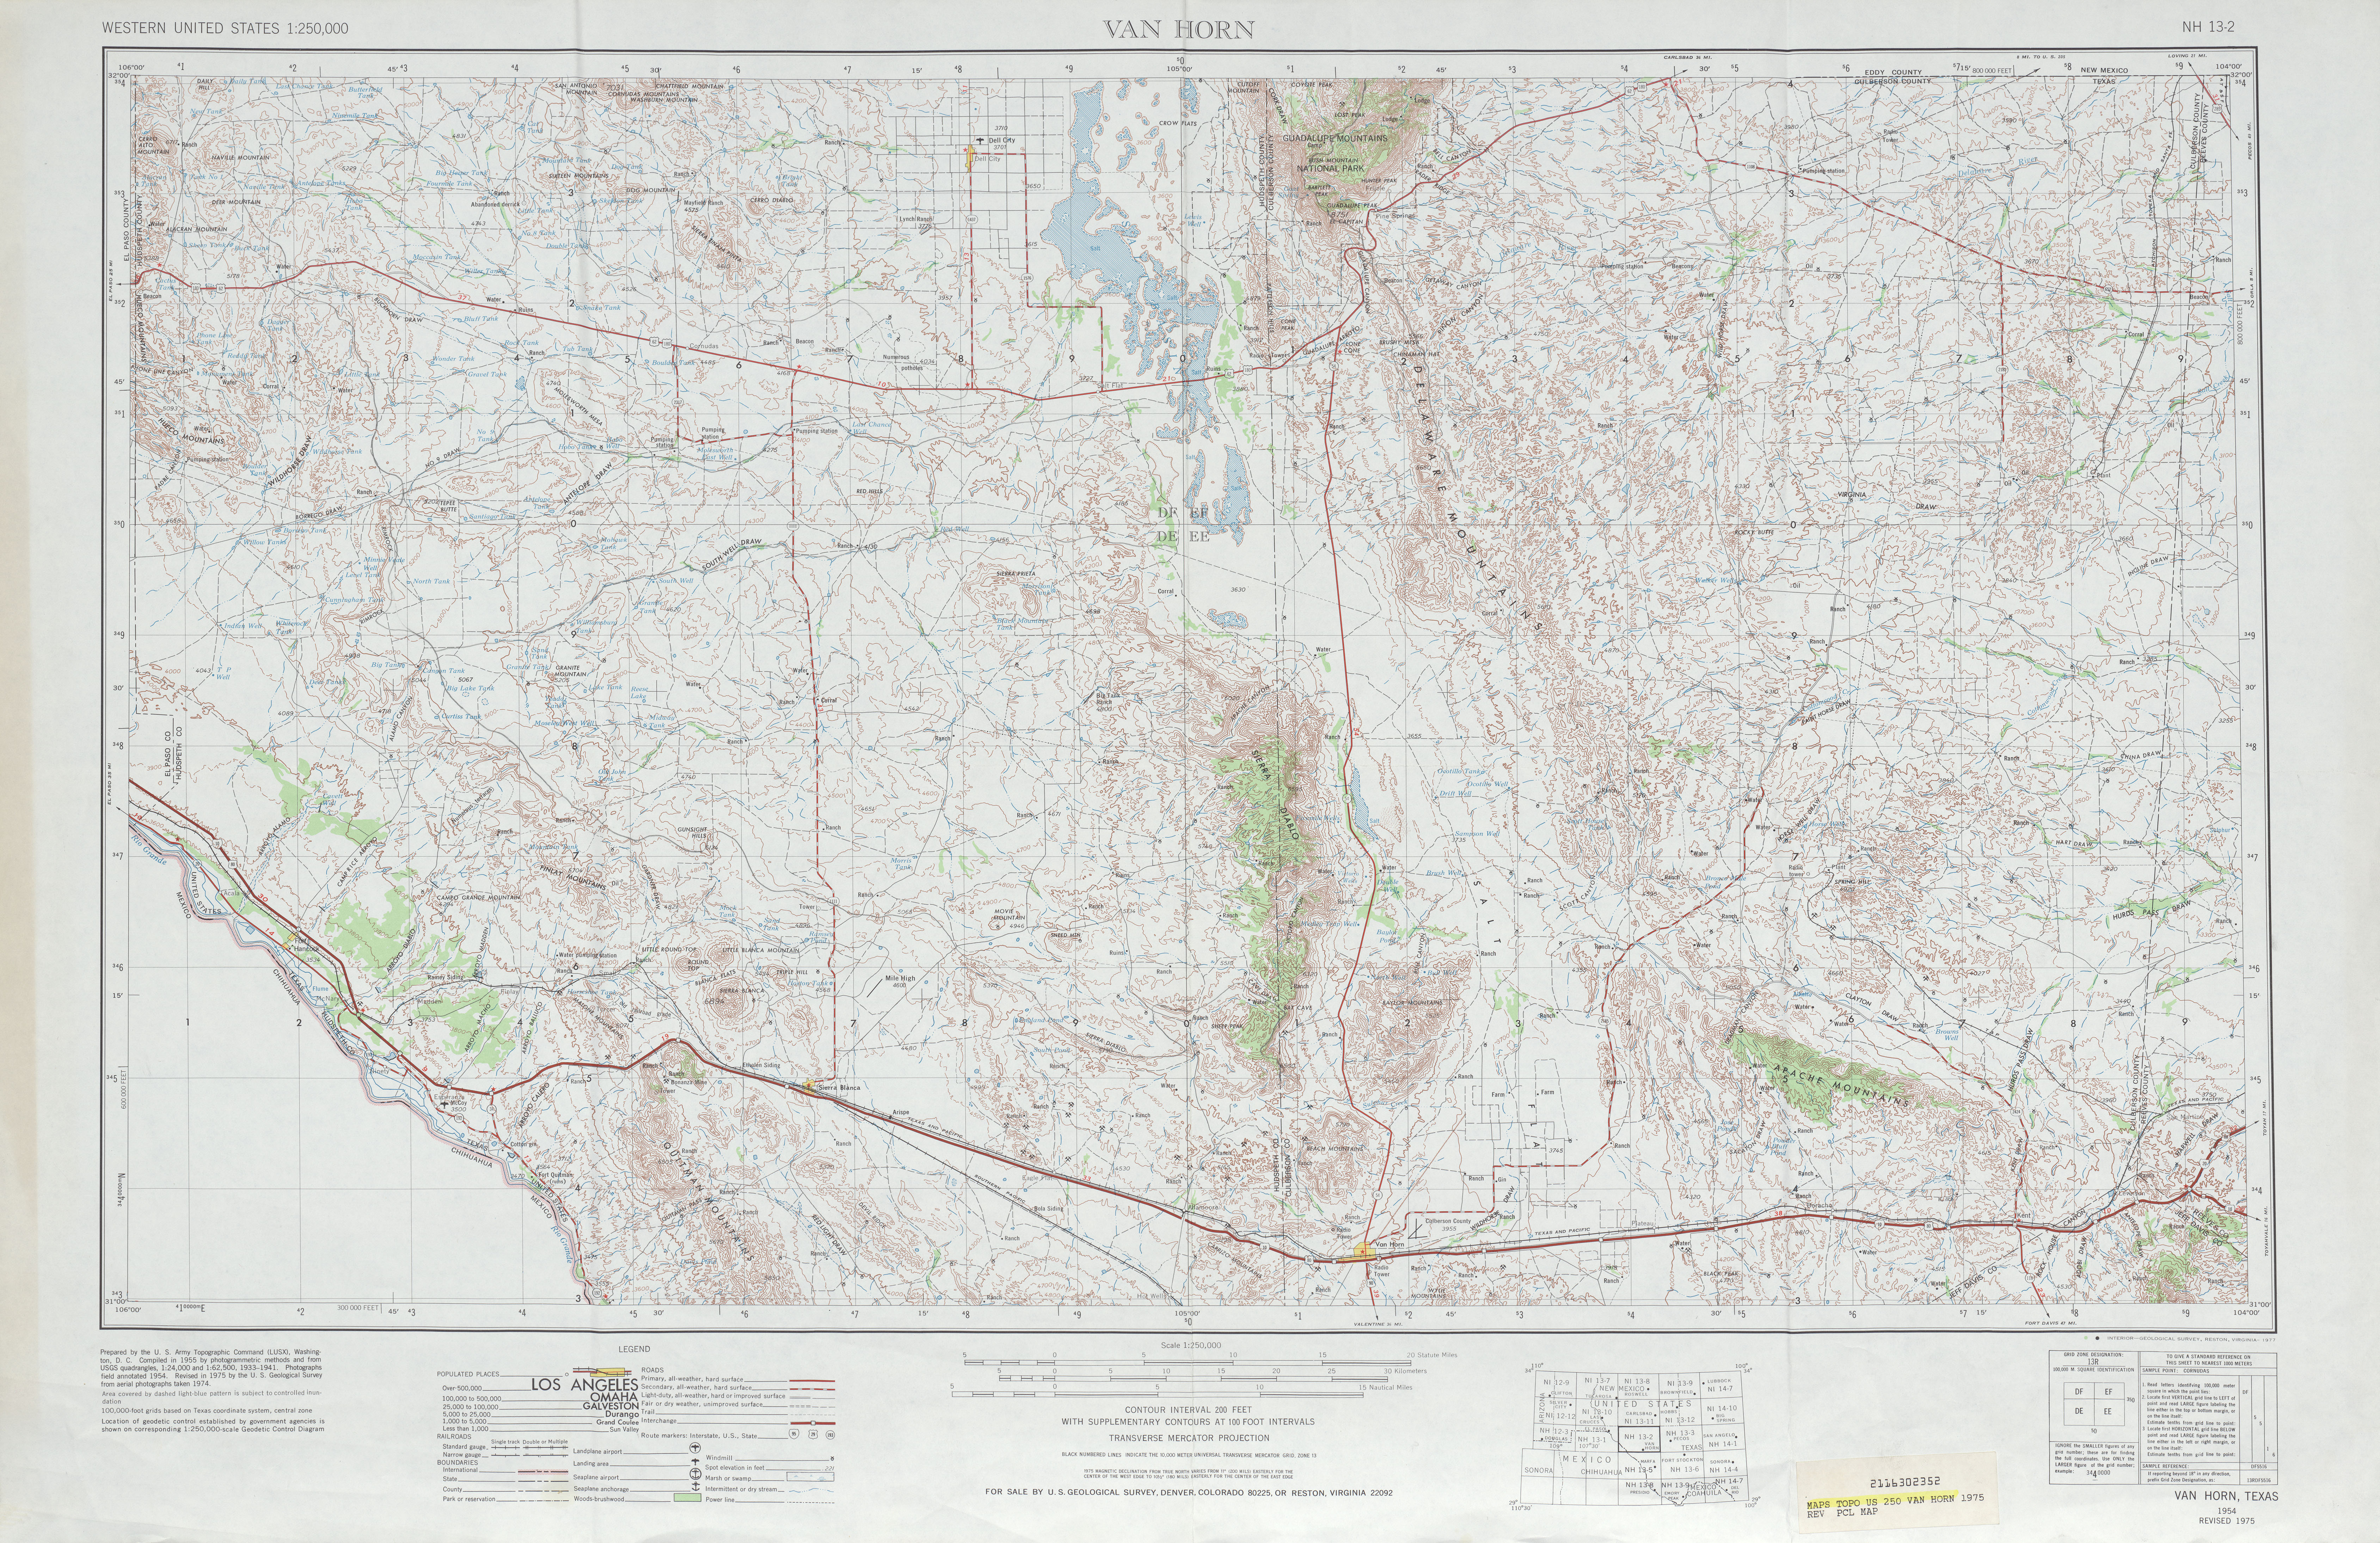 Van Horn Topographic Map Sheet, United States 1975